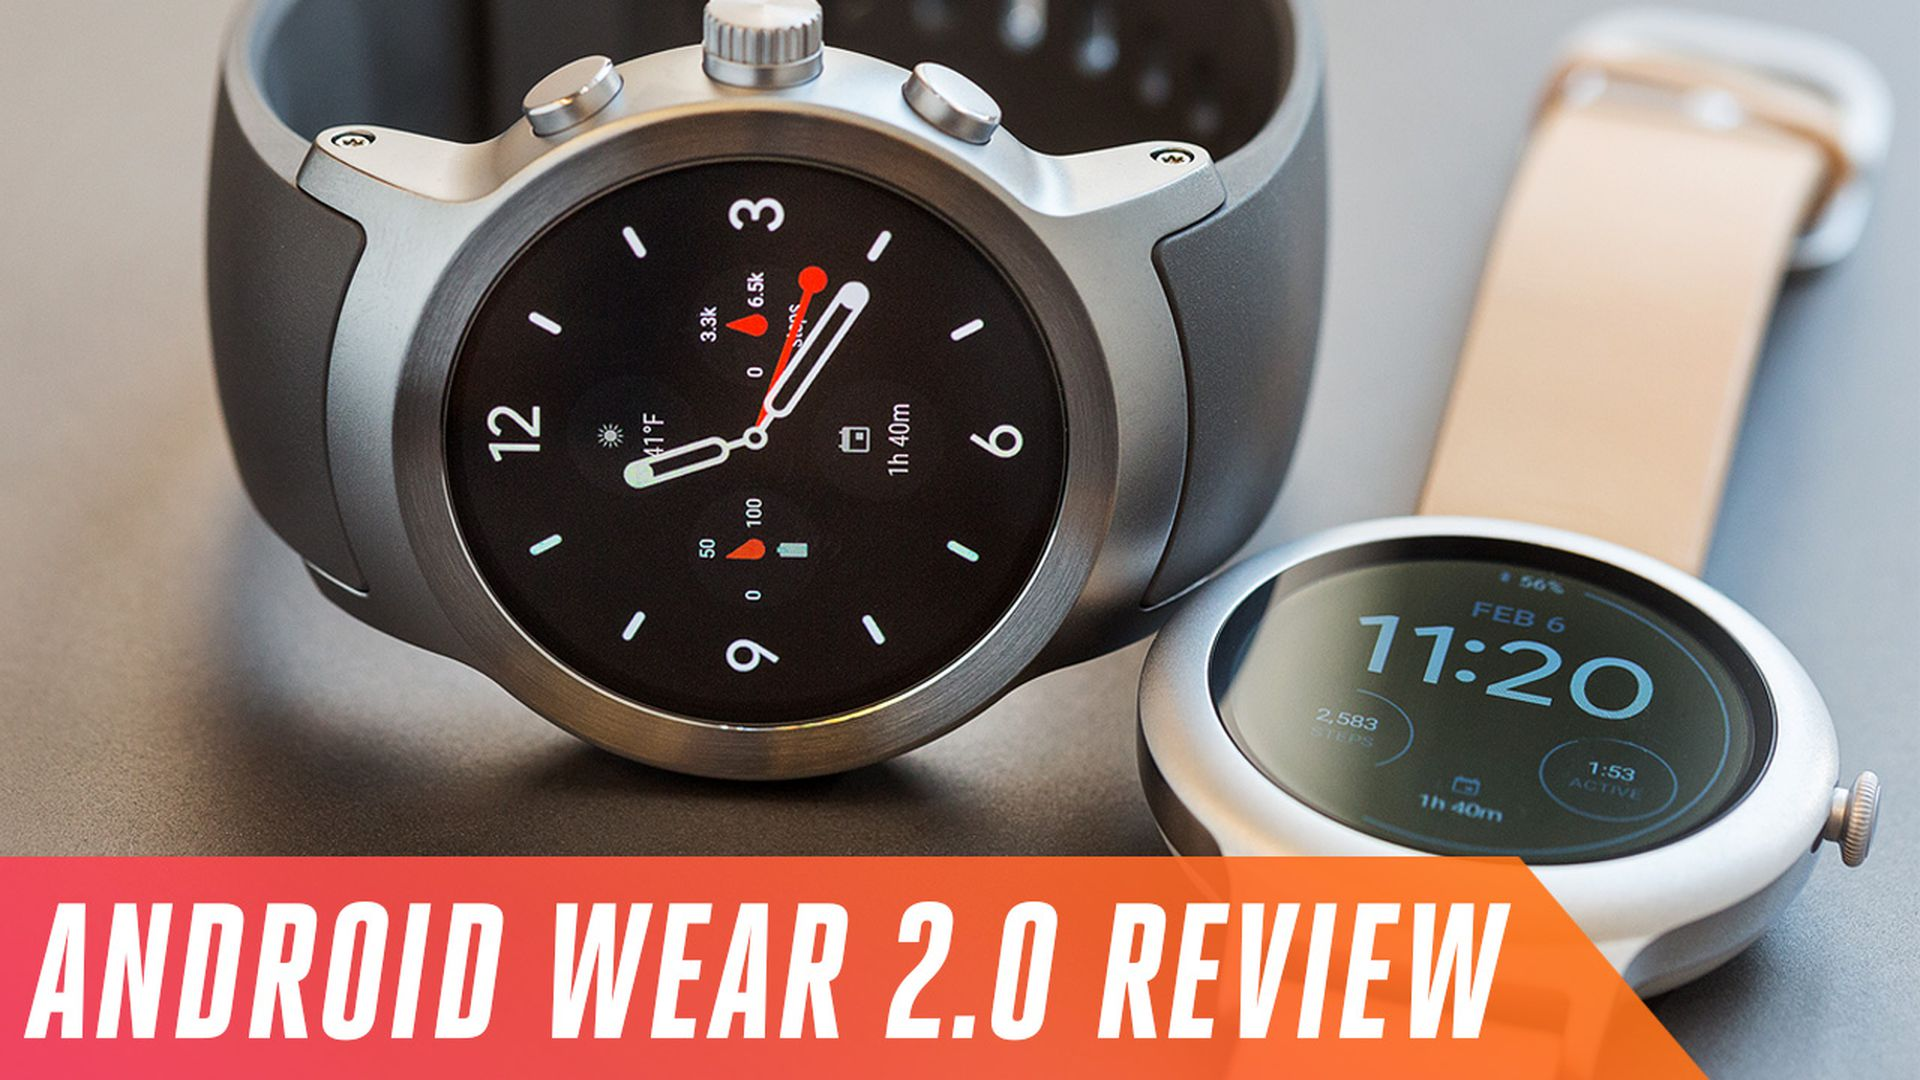 the 7 best new features in android wear 2.0 watches - the verge